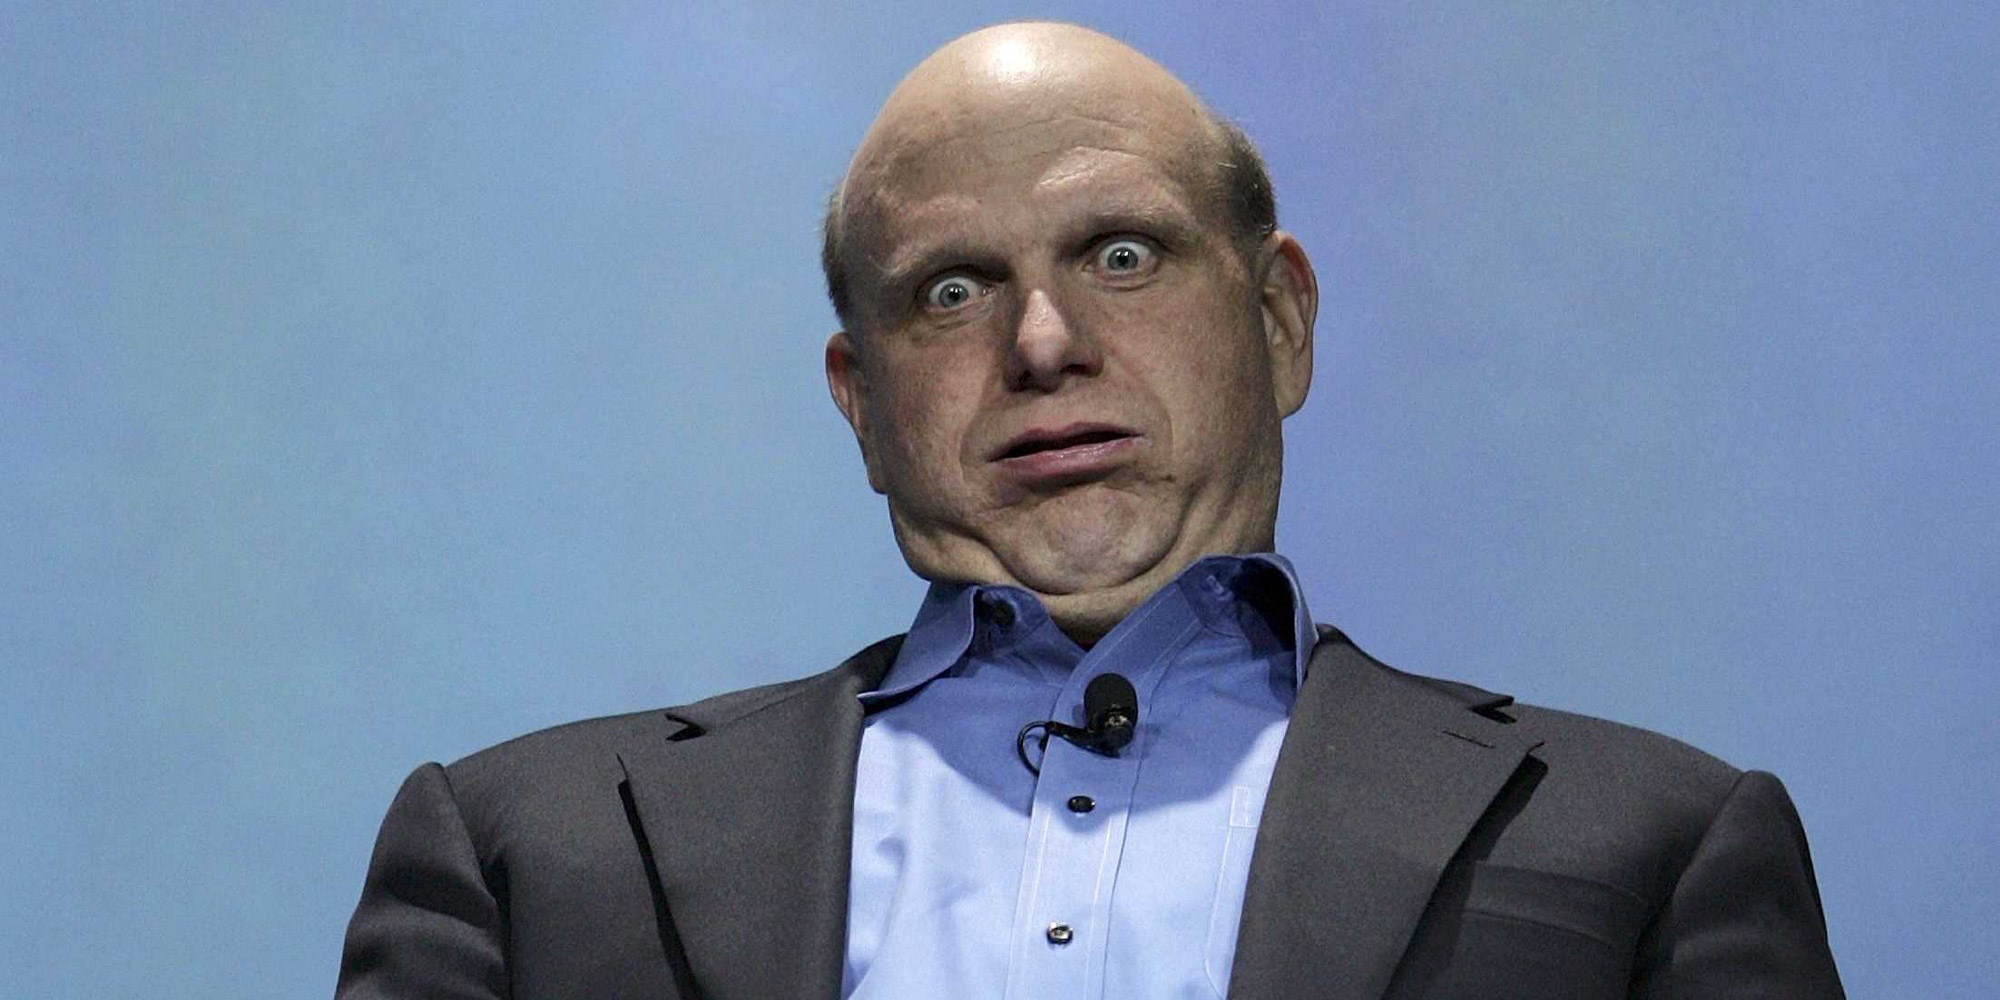 And Now Some Advice for Being Like Steve Ballmer